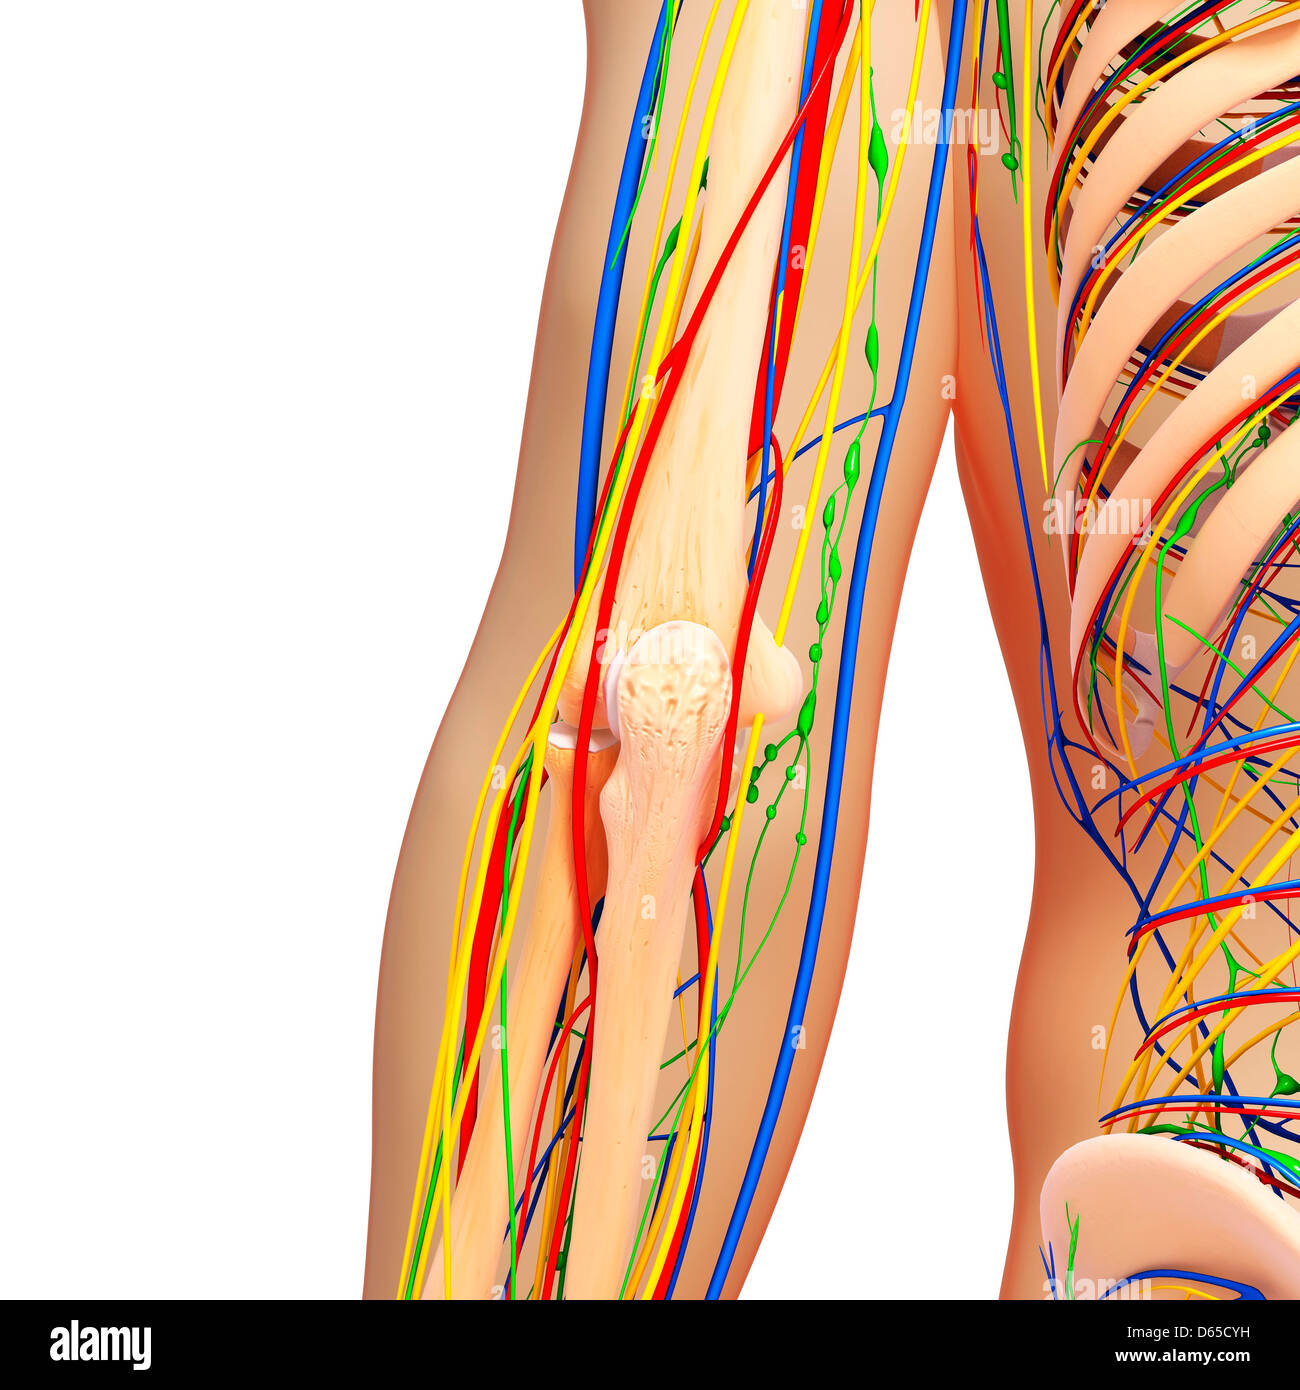 Human Skeleton Arm Elbow Anatomy Stock Photos Human Skeleton Arm